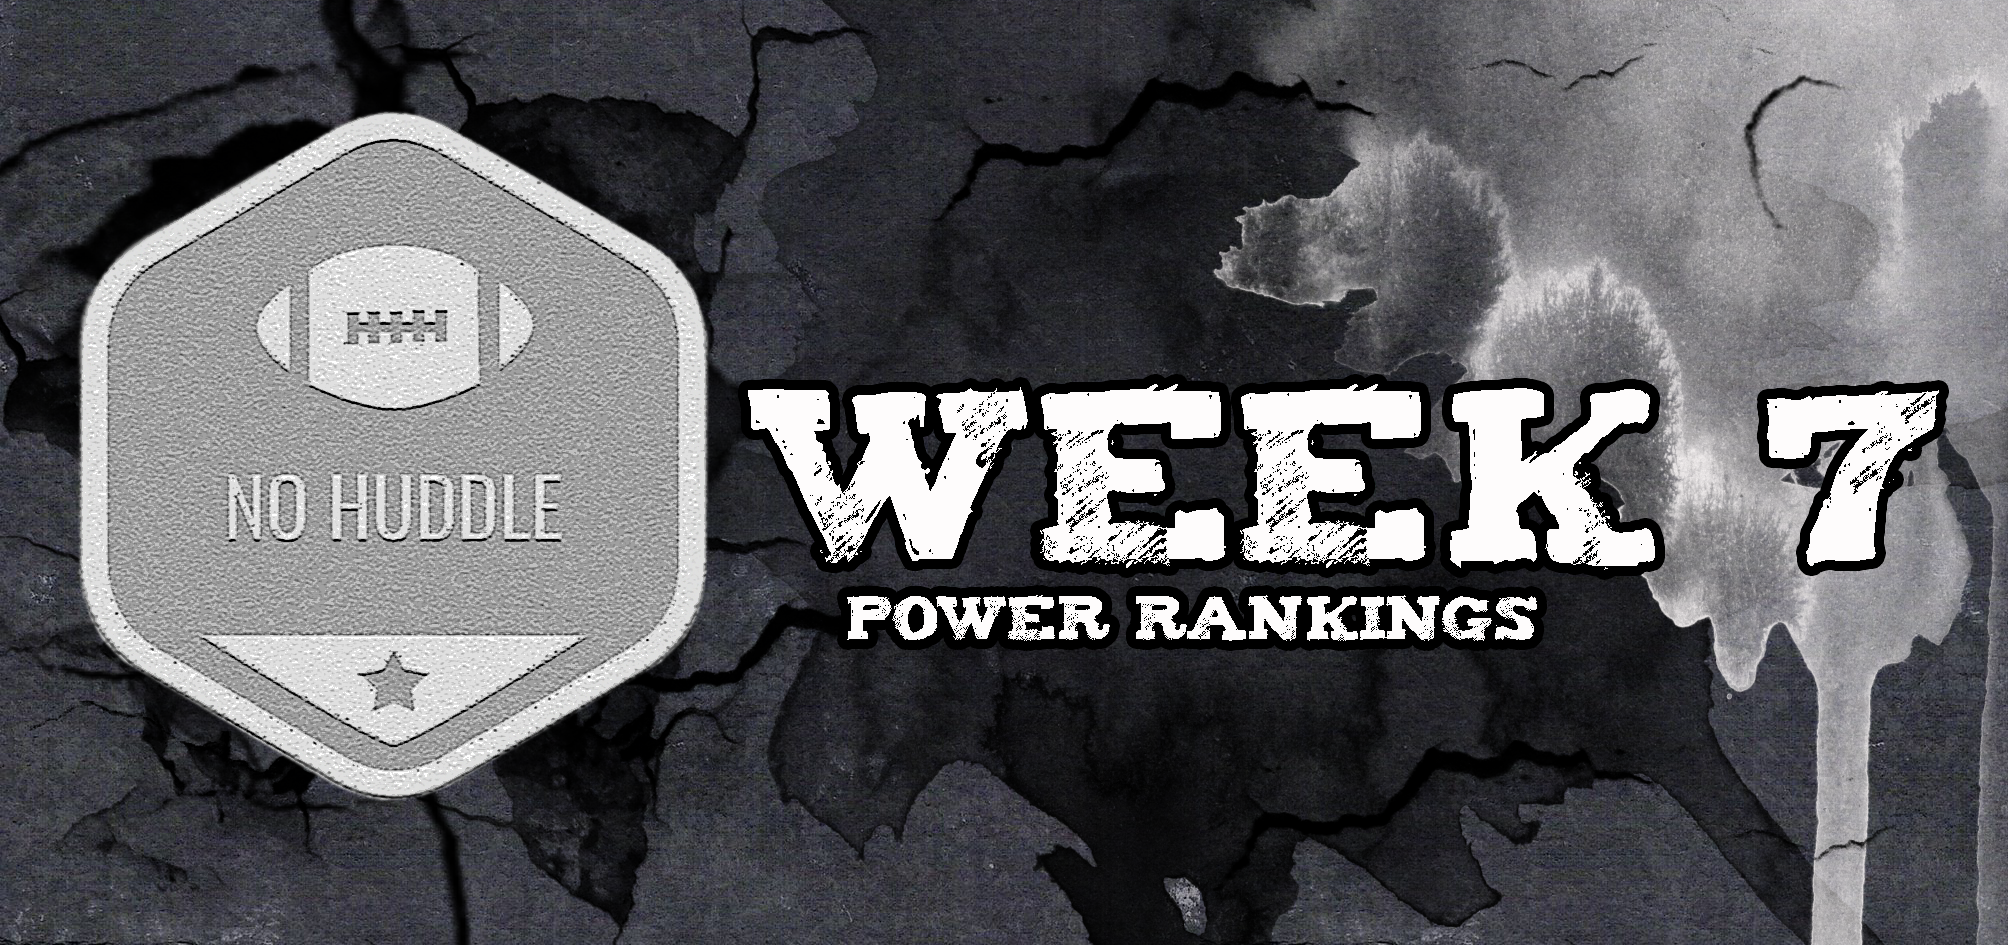 Power Rankings: Semana 7